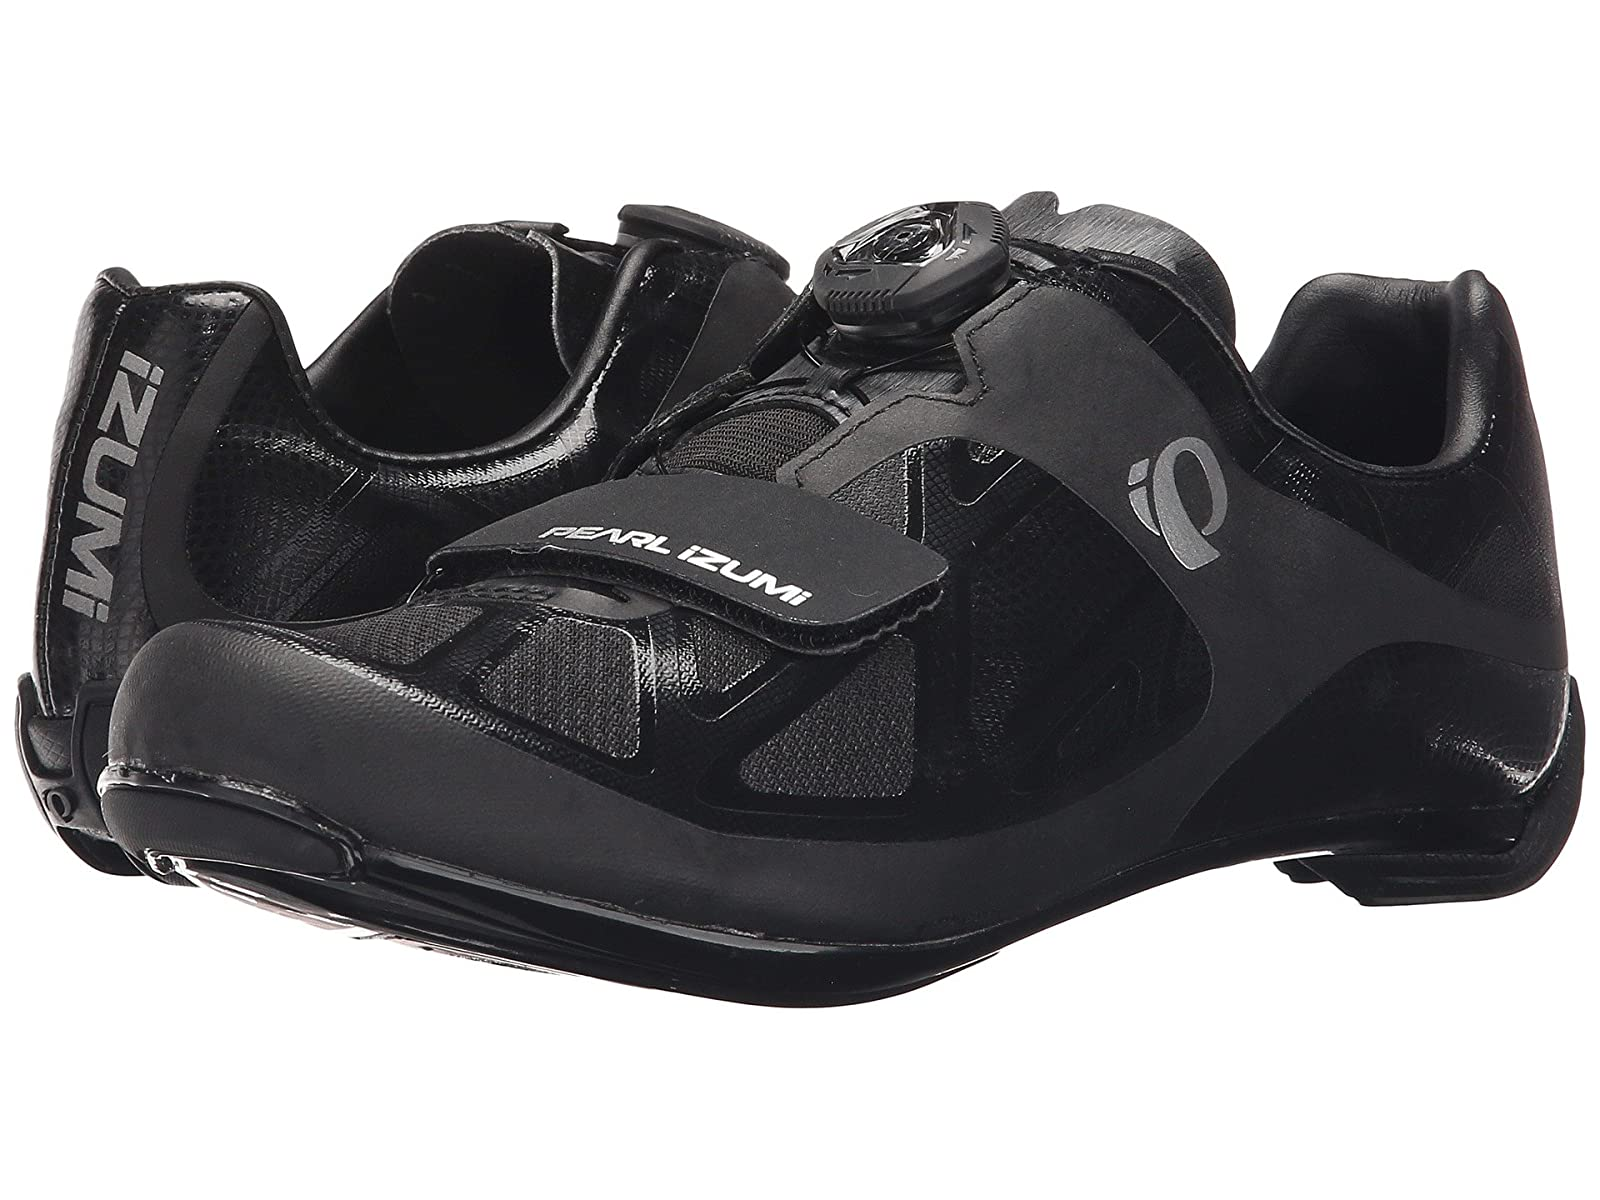 Pearl Izumi Race RD IVCheap and distinctive eye-catching shoes